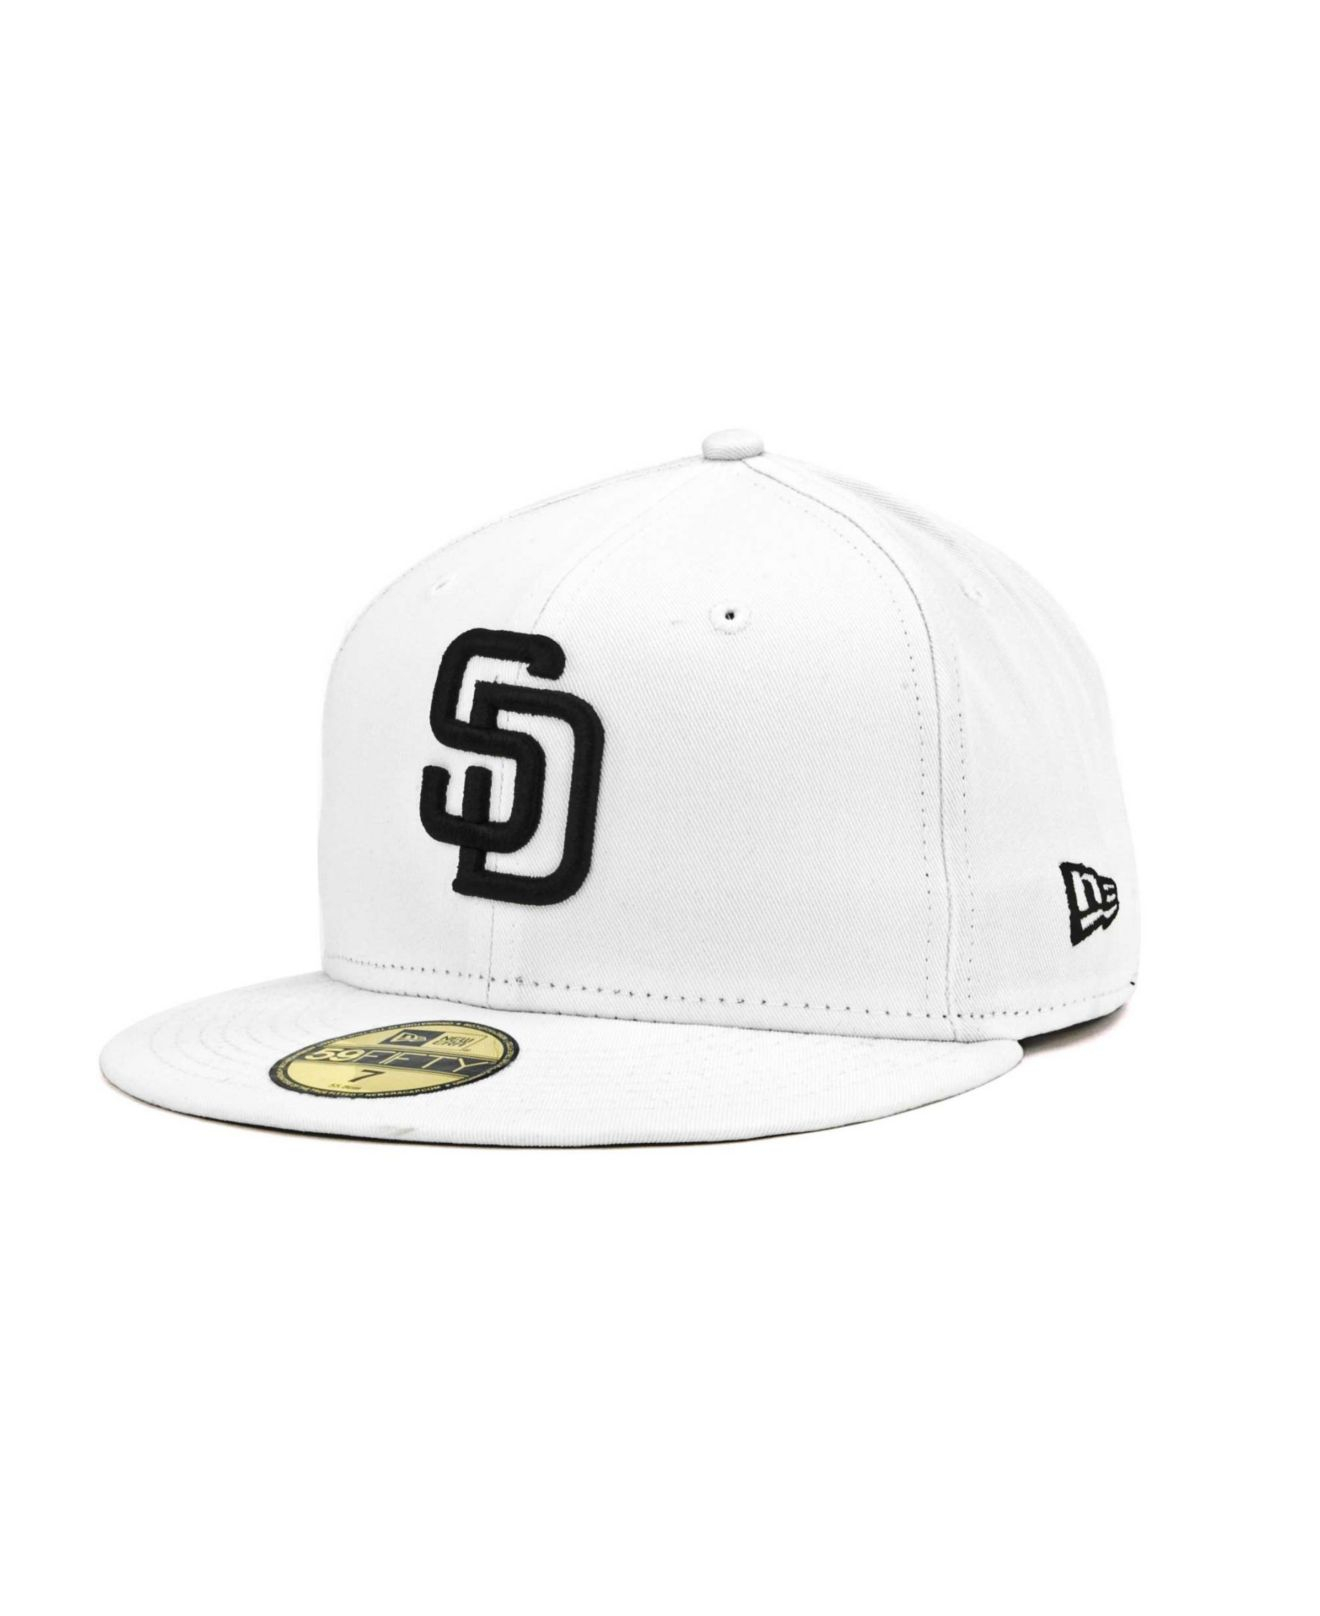 separation shoes a02f2 d5453 KTZ San Diego Padres Mlb White And Black 59fifty Cap in White for Men - Lyst